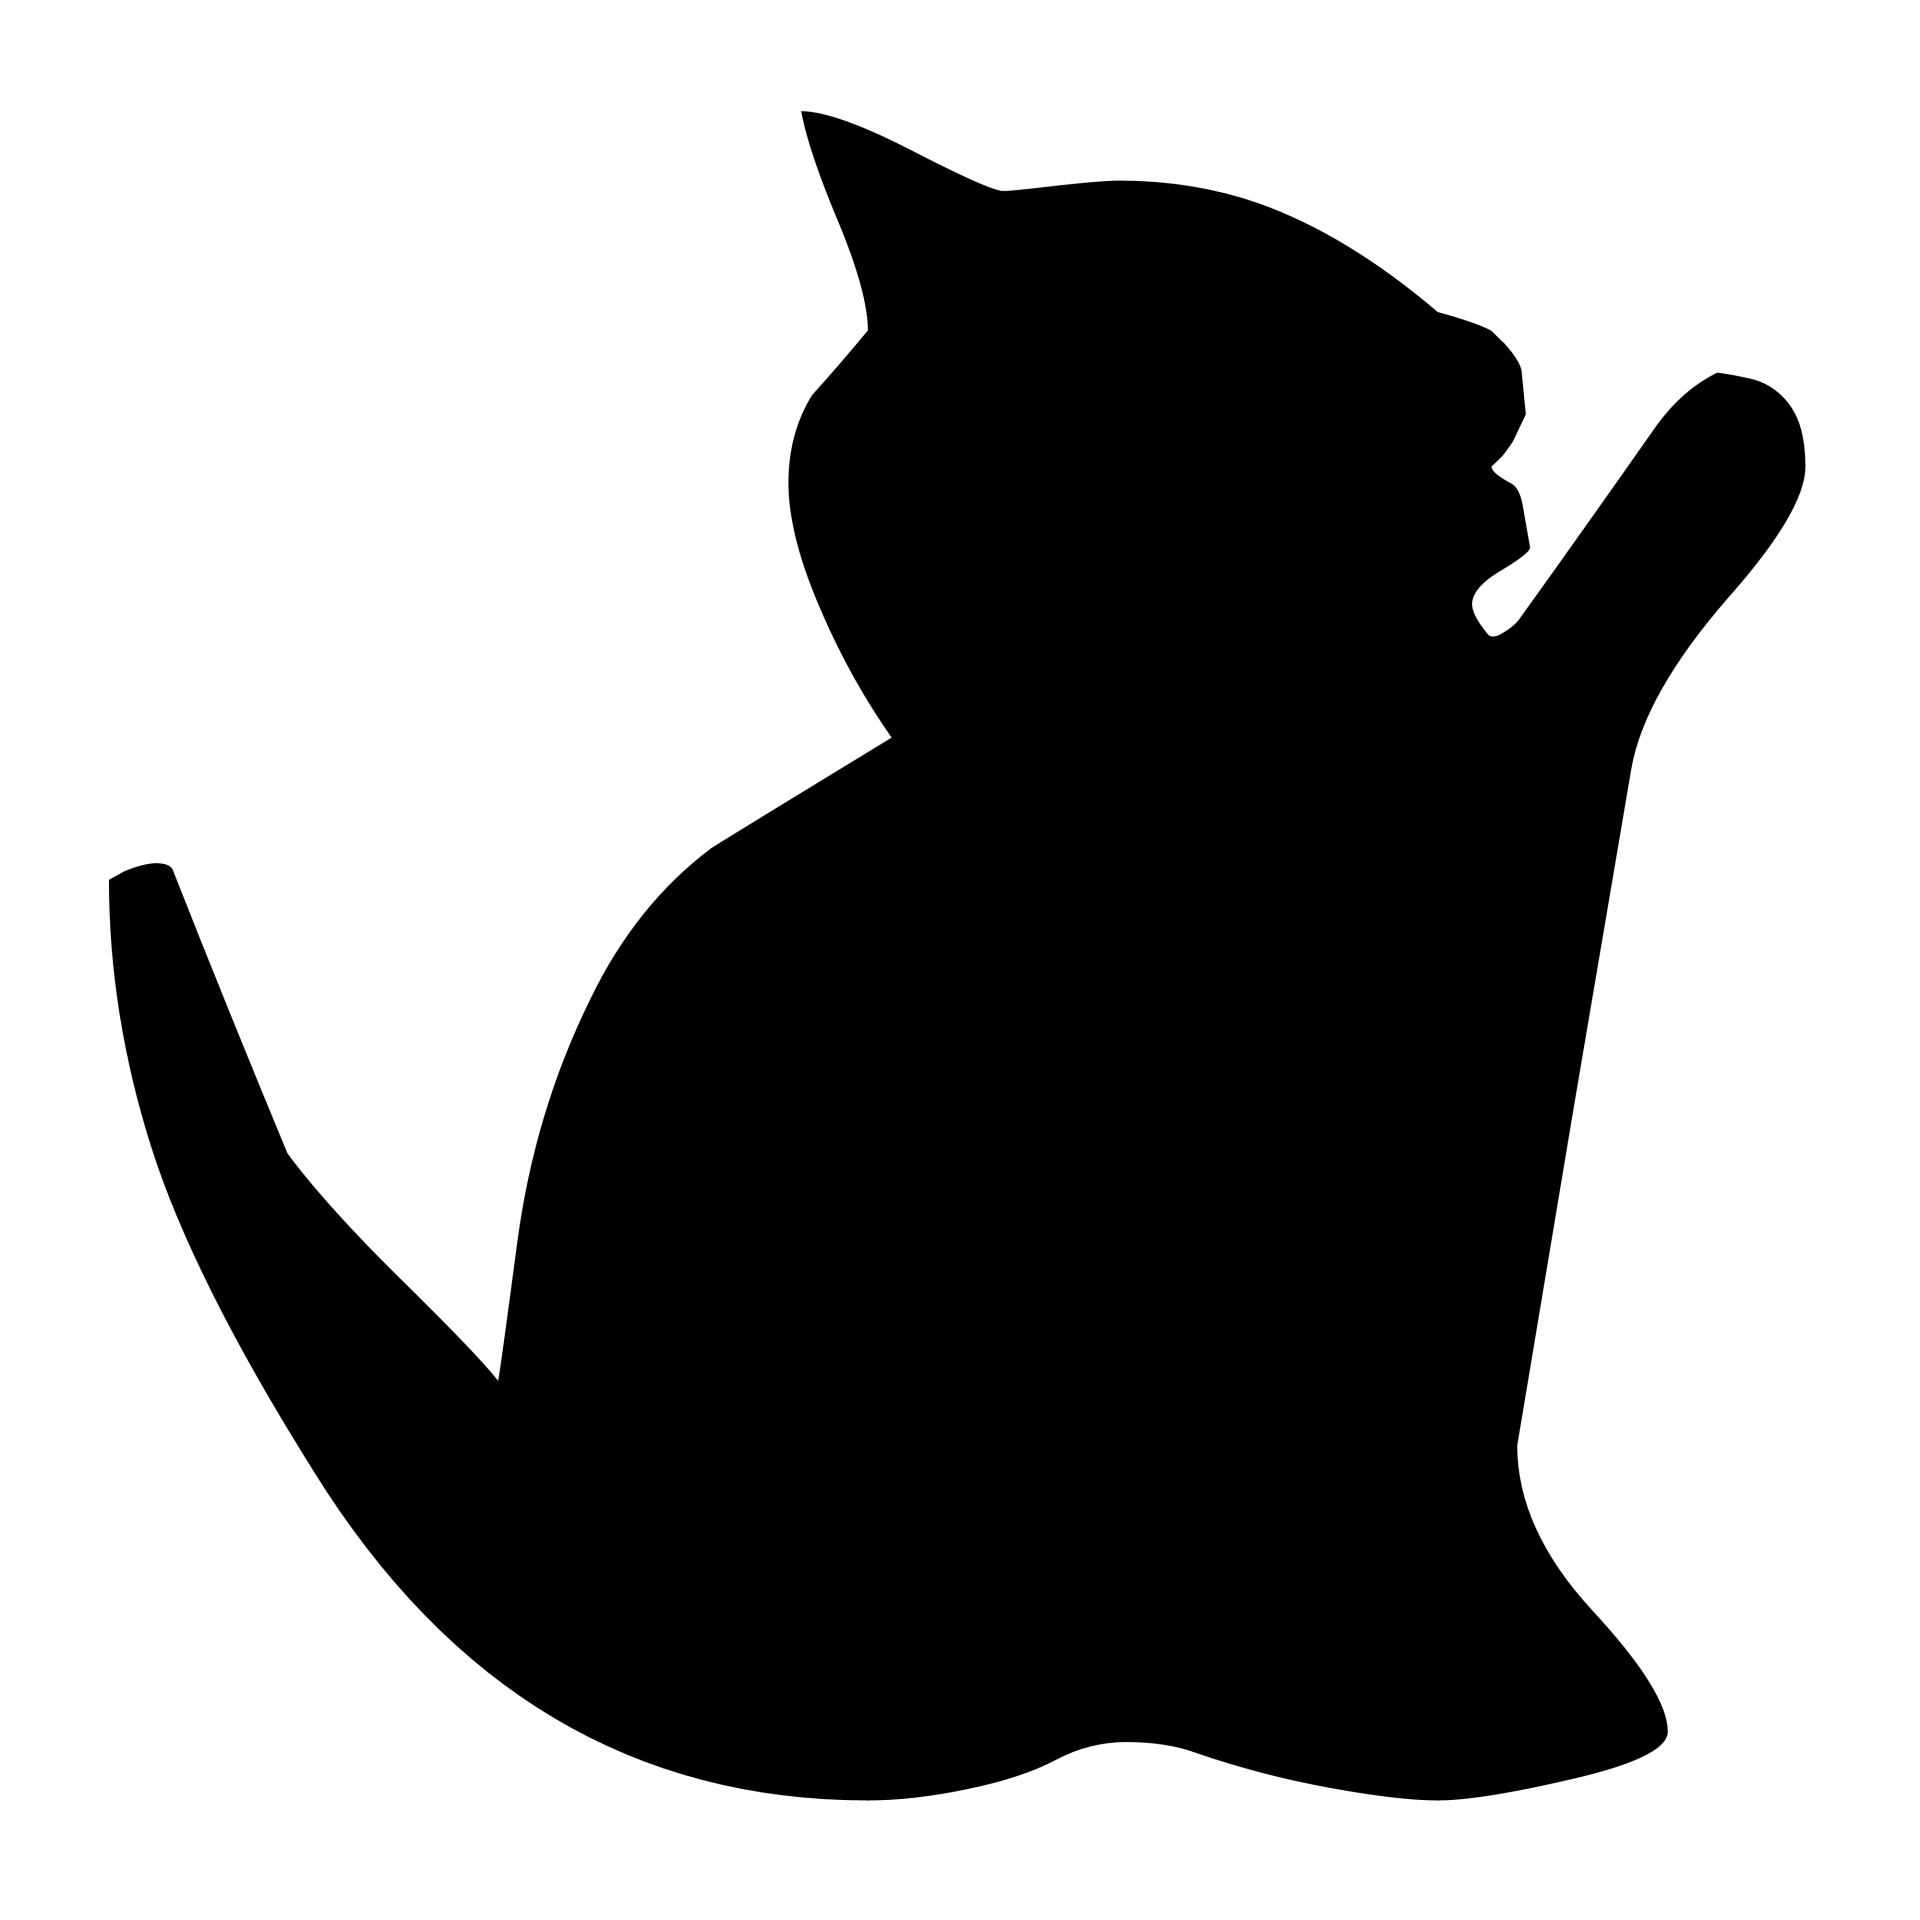 1920x1920 Silhouette Of A Cat Free Stock Photo